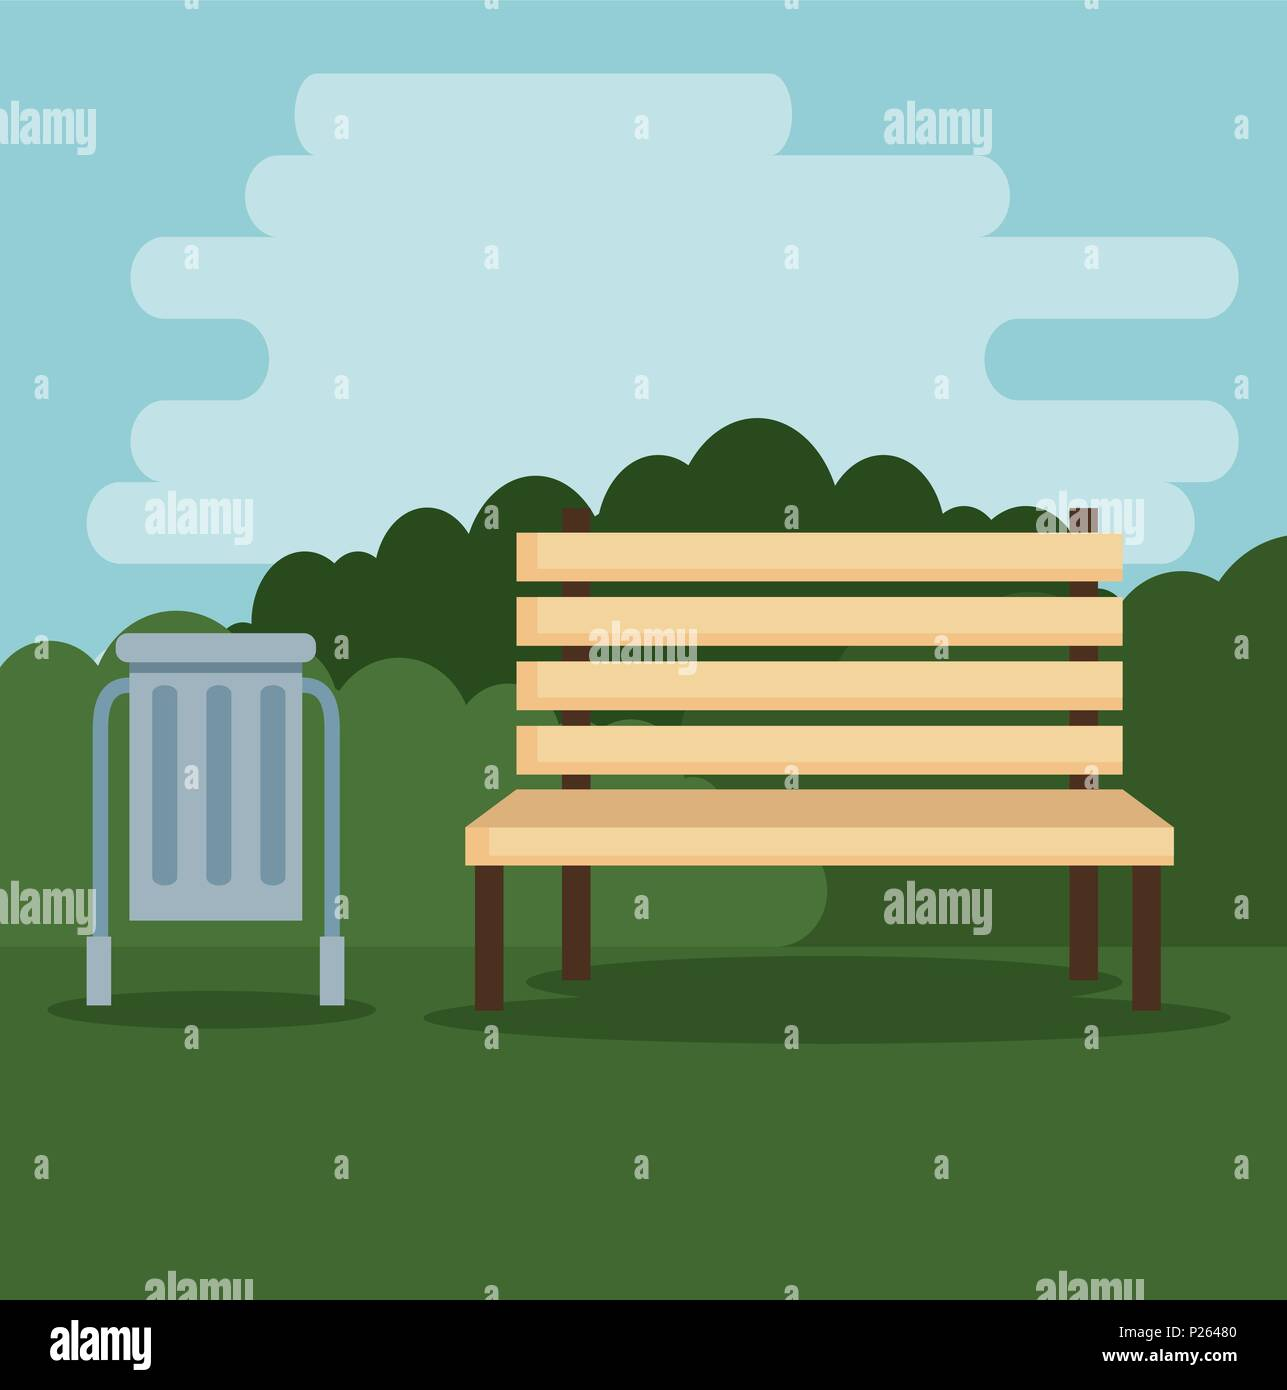 park scene outdoor icons - Stock Vector